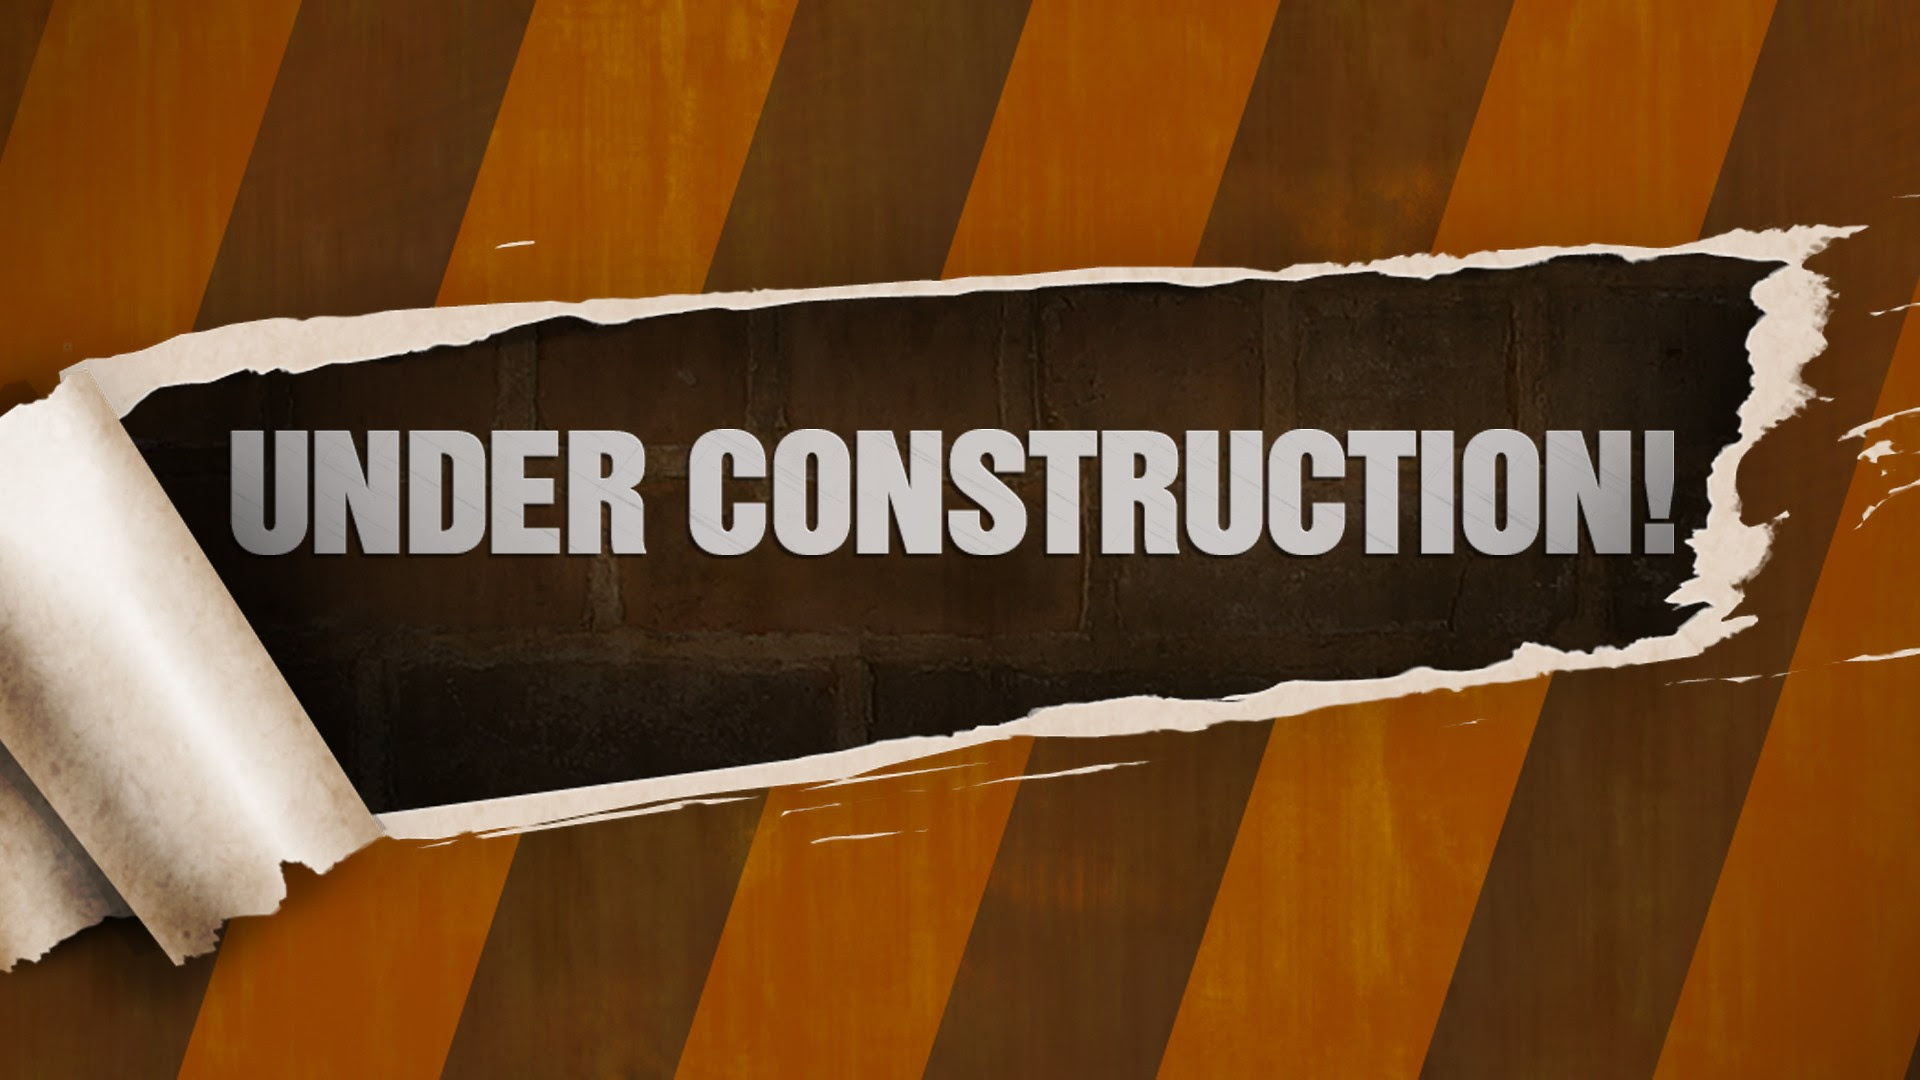 50 Free Construction Wallpapers For Download in High ...